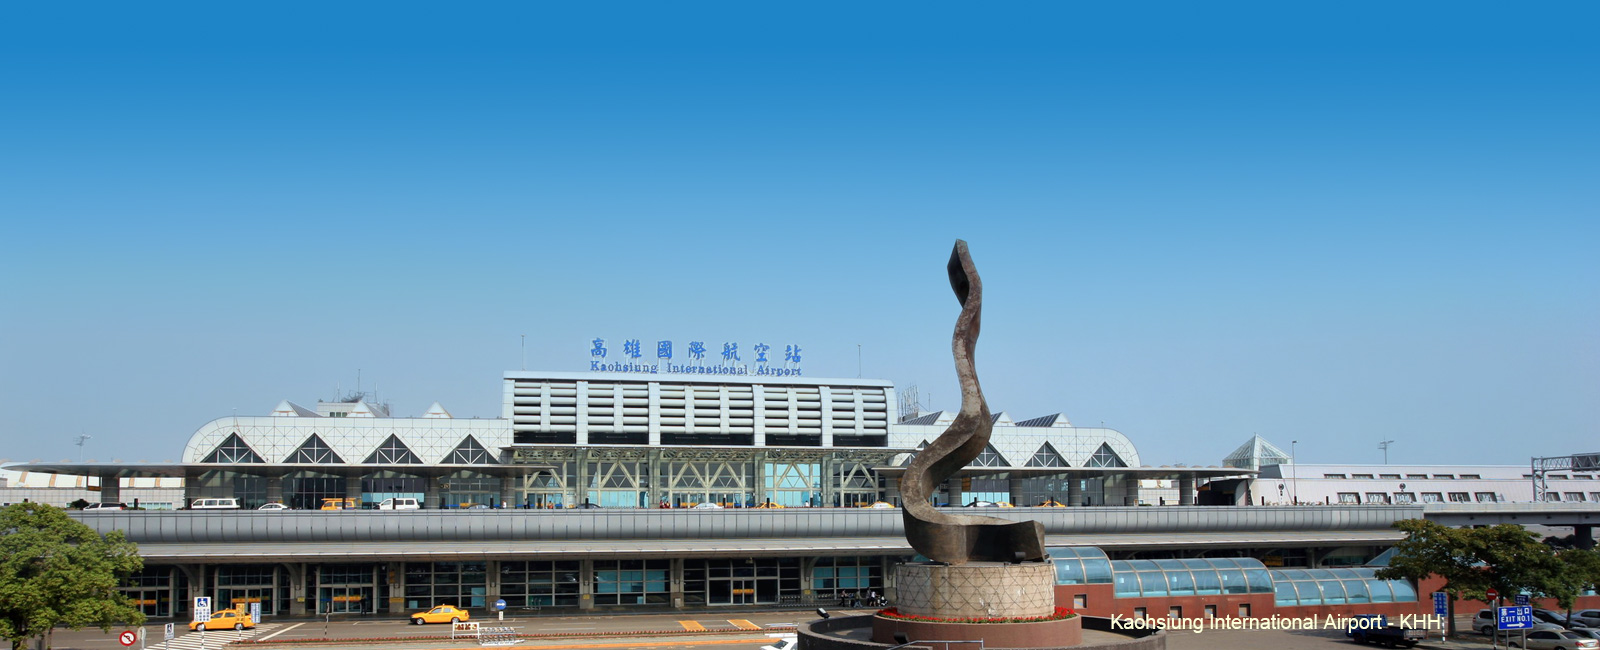 Kaohsiung International Airport-KHH 高雄國際航空站